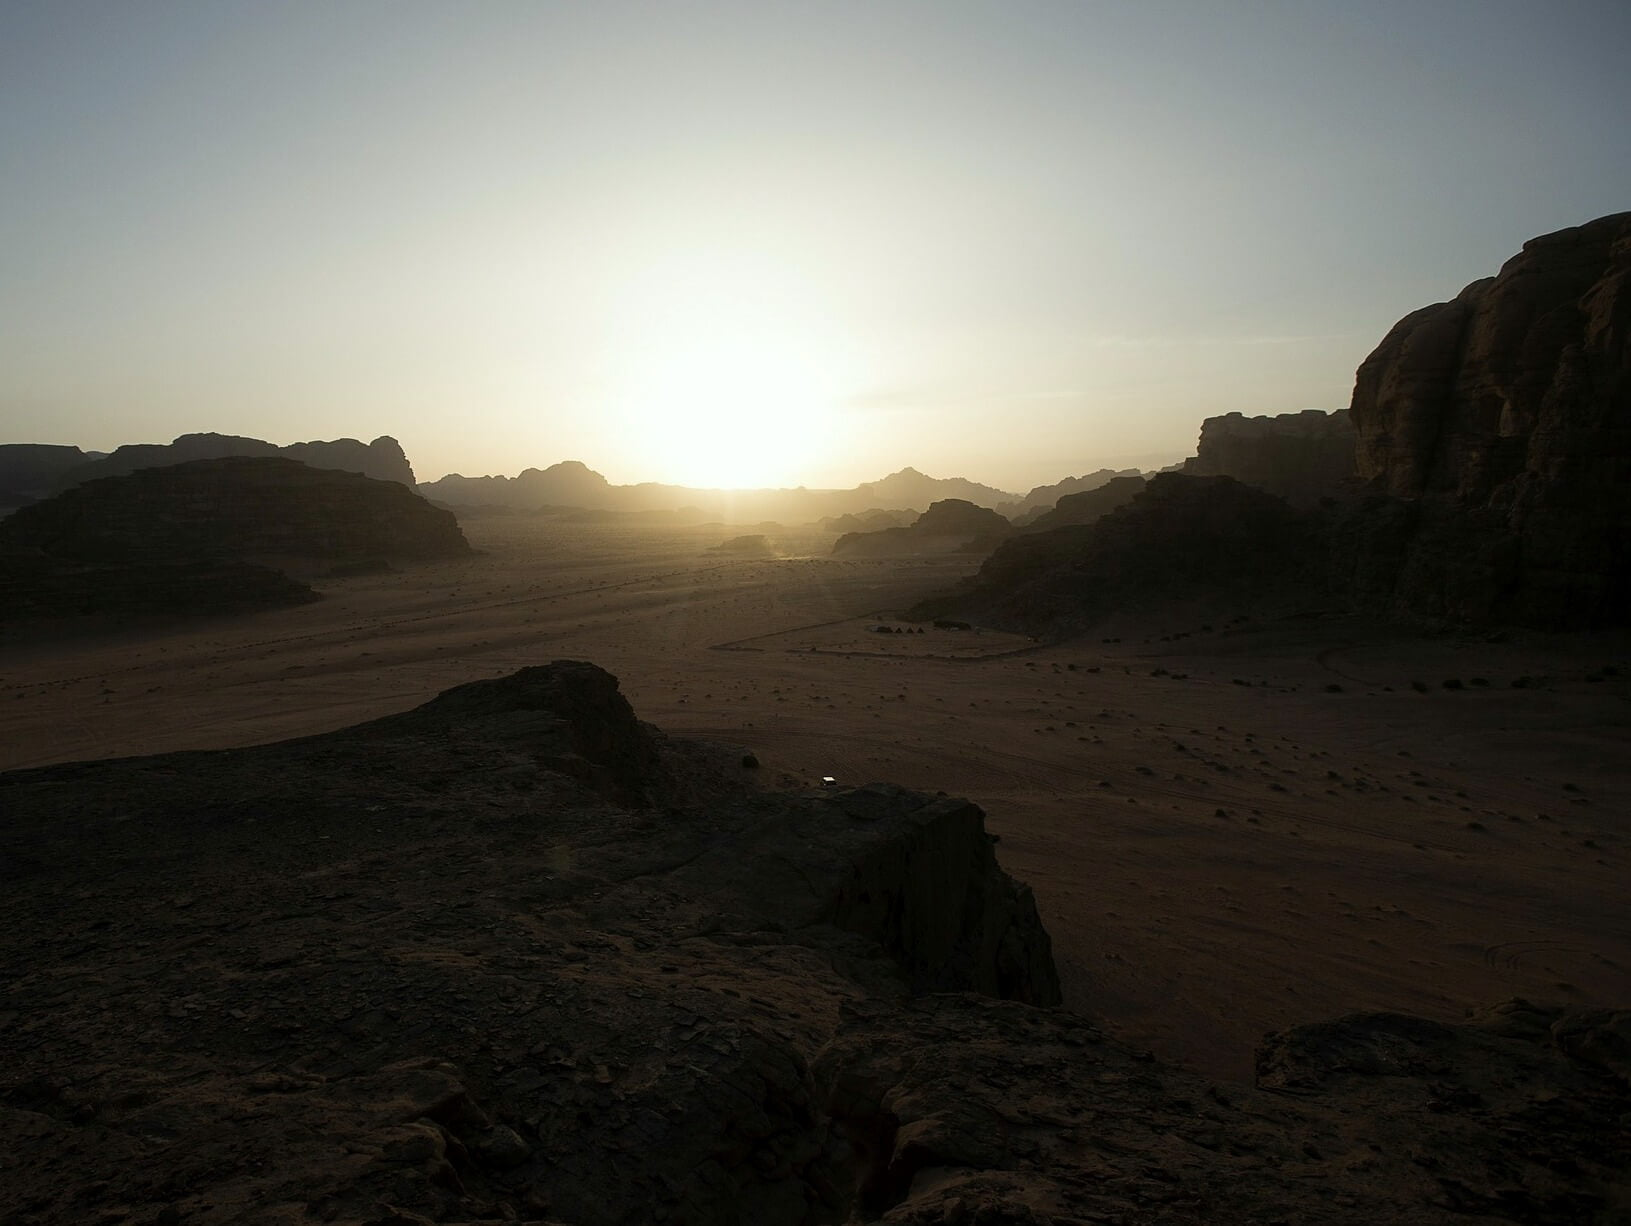 Jordan-travel-Wadi-Rum-Glimpses-of-The-World